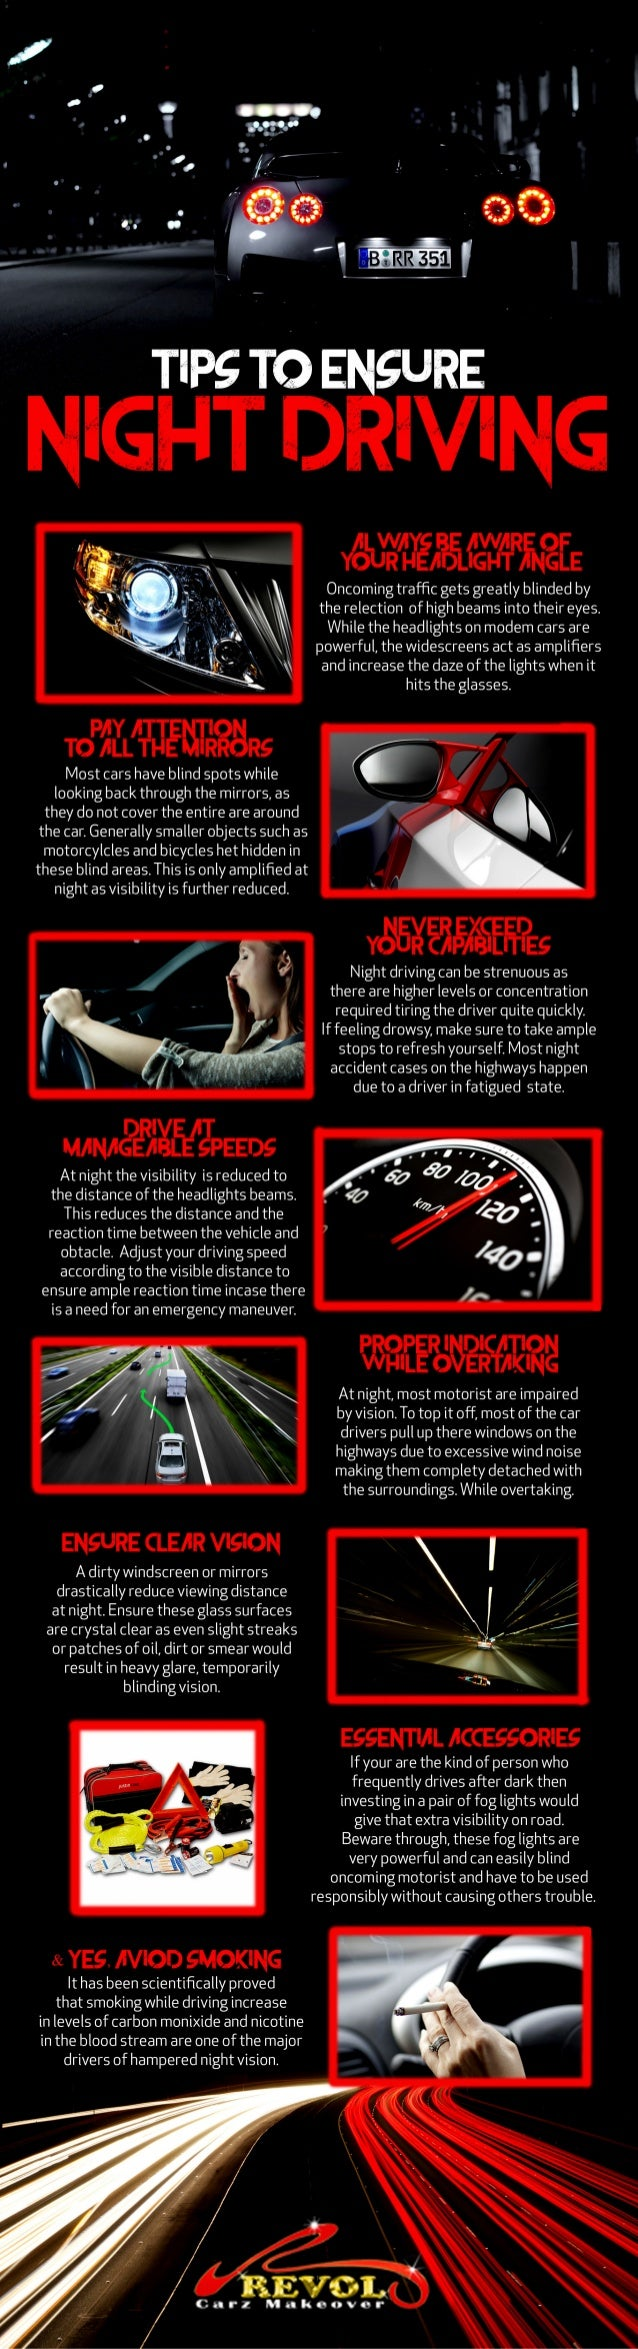 Tips to ensure night driving